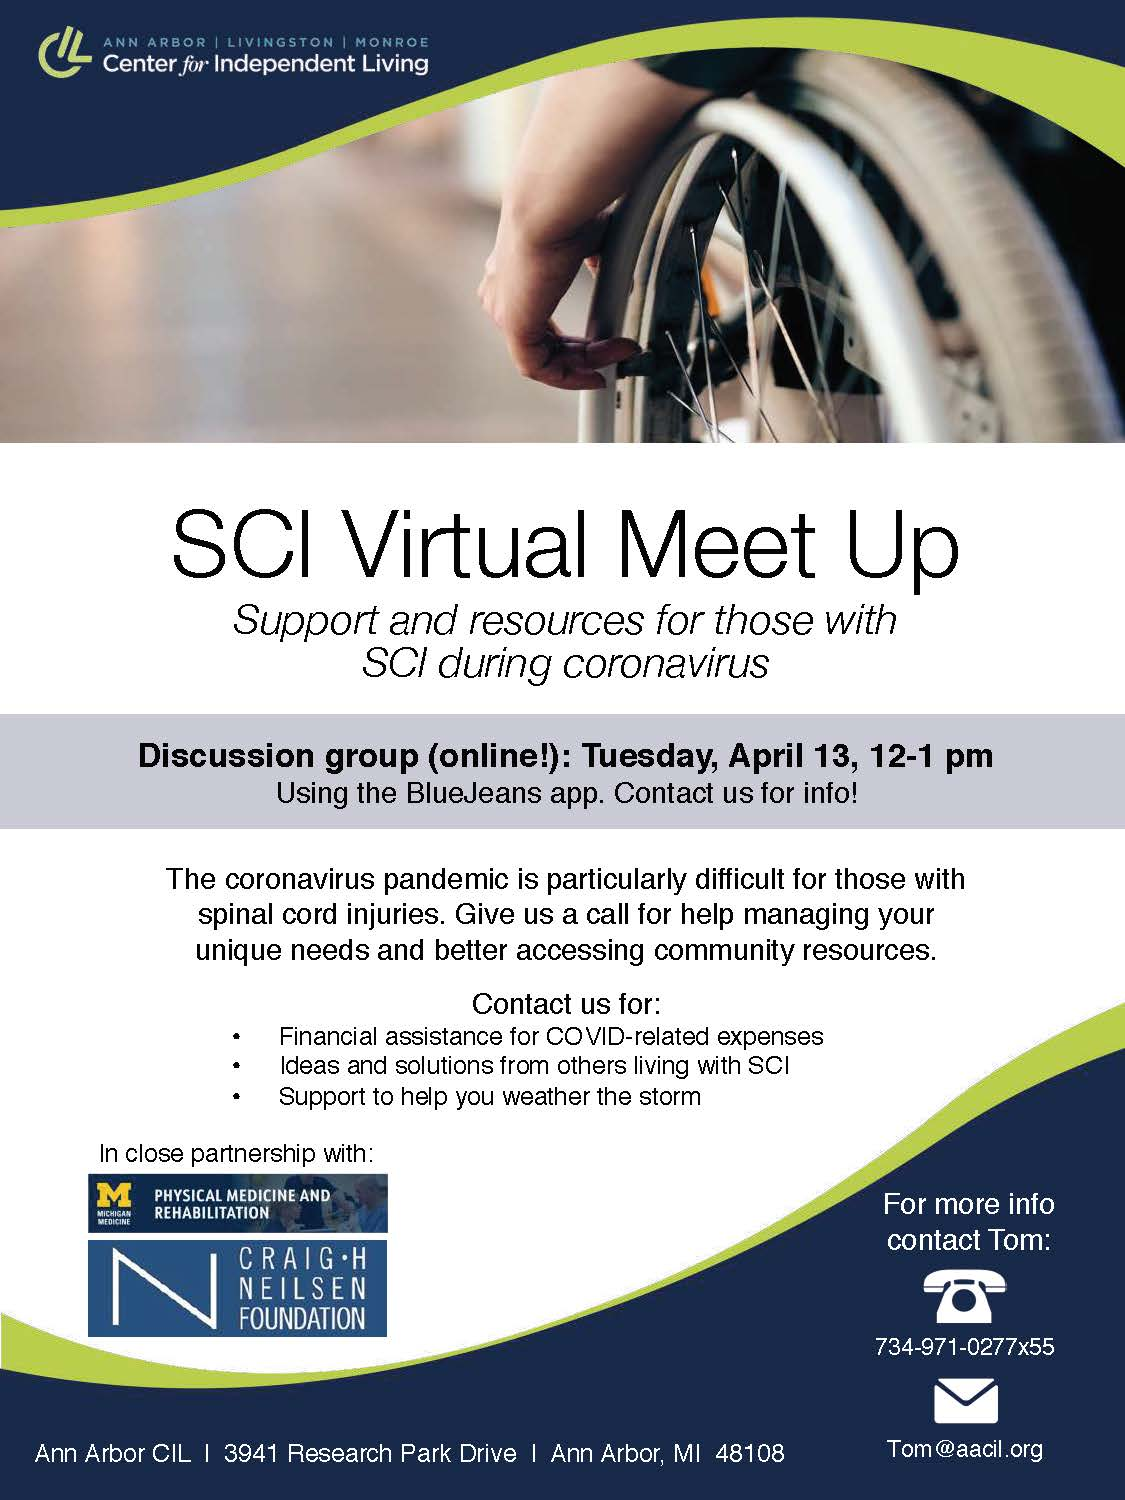 Flyer for the April SCI meetup. Full details are included in the event description.